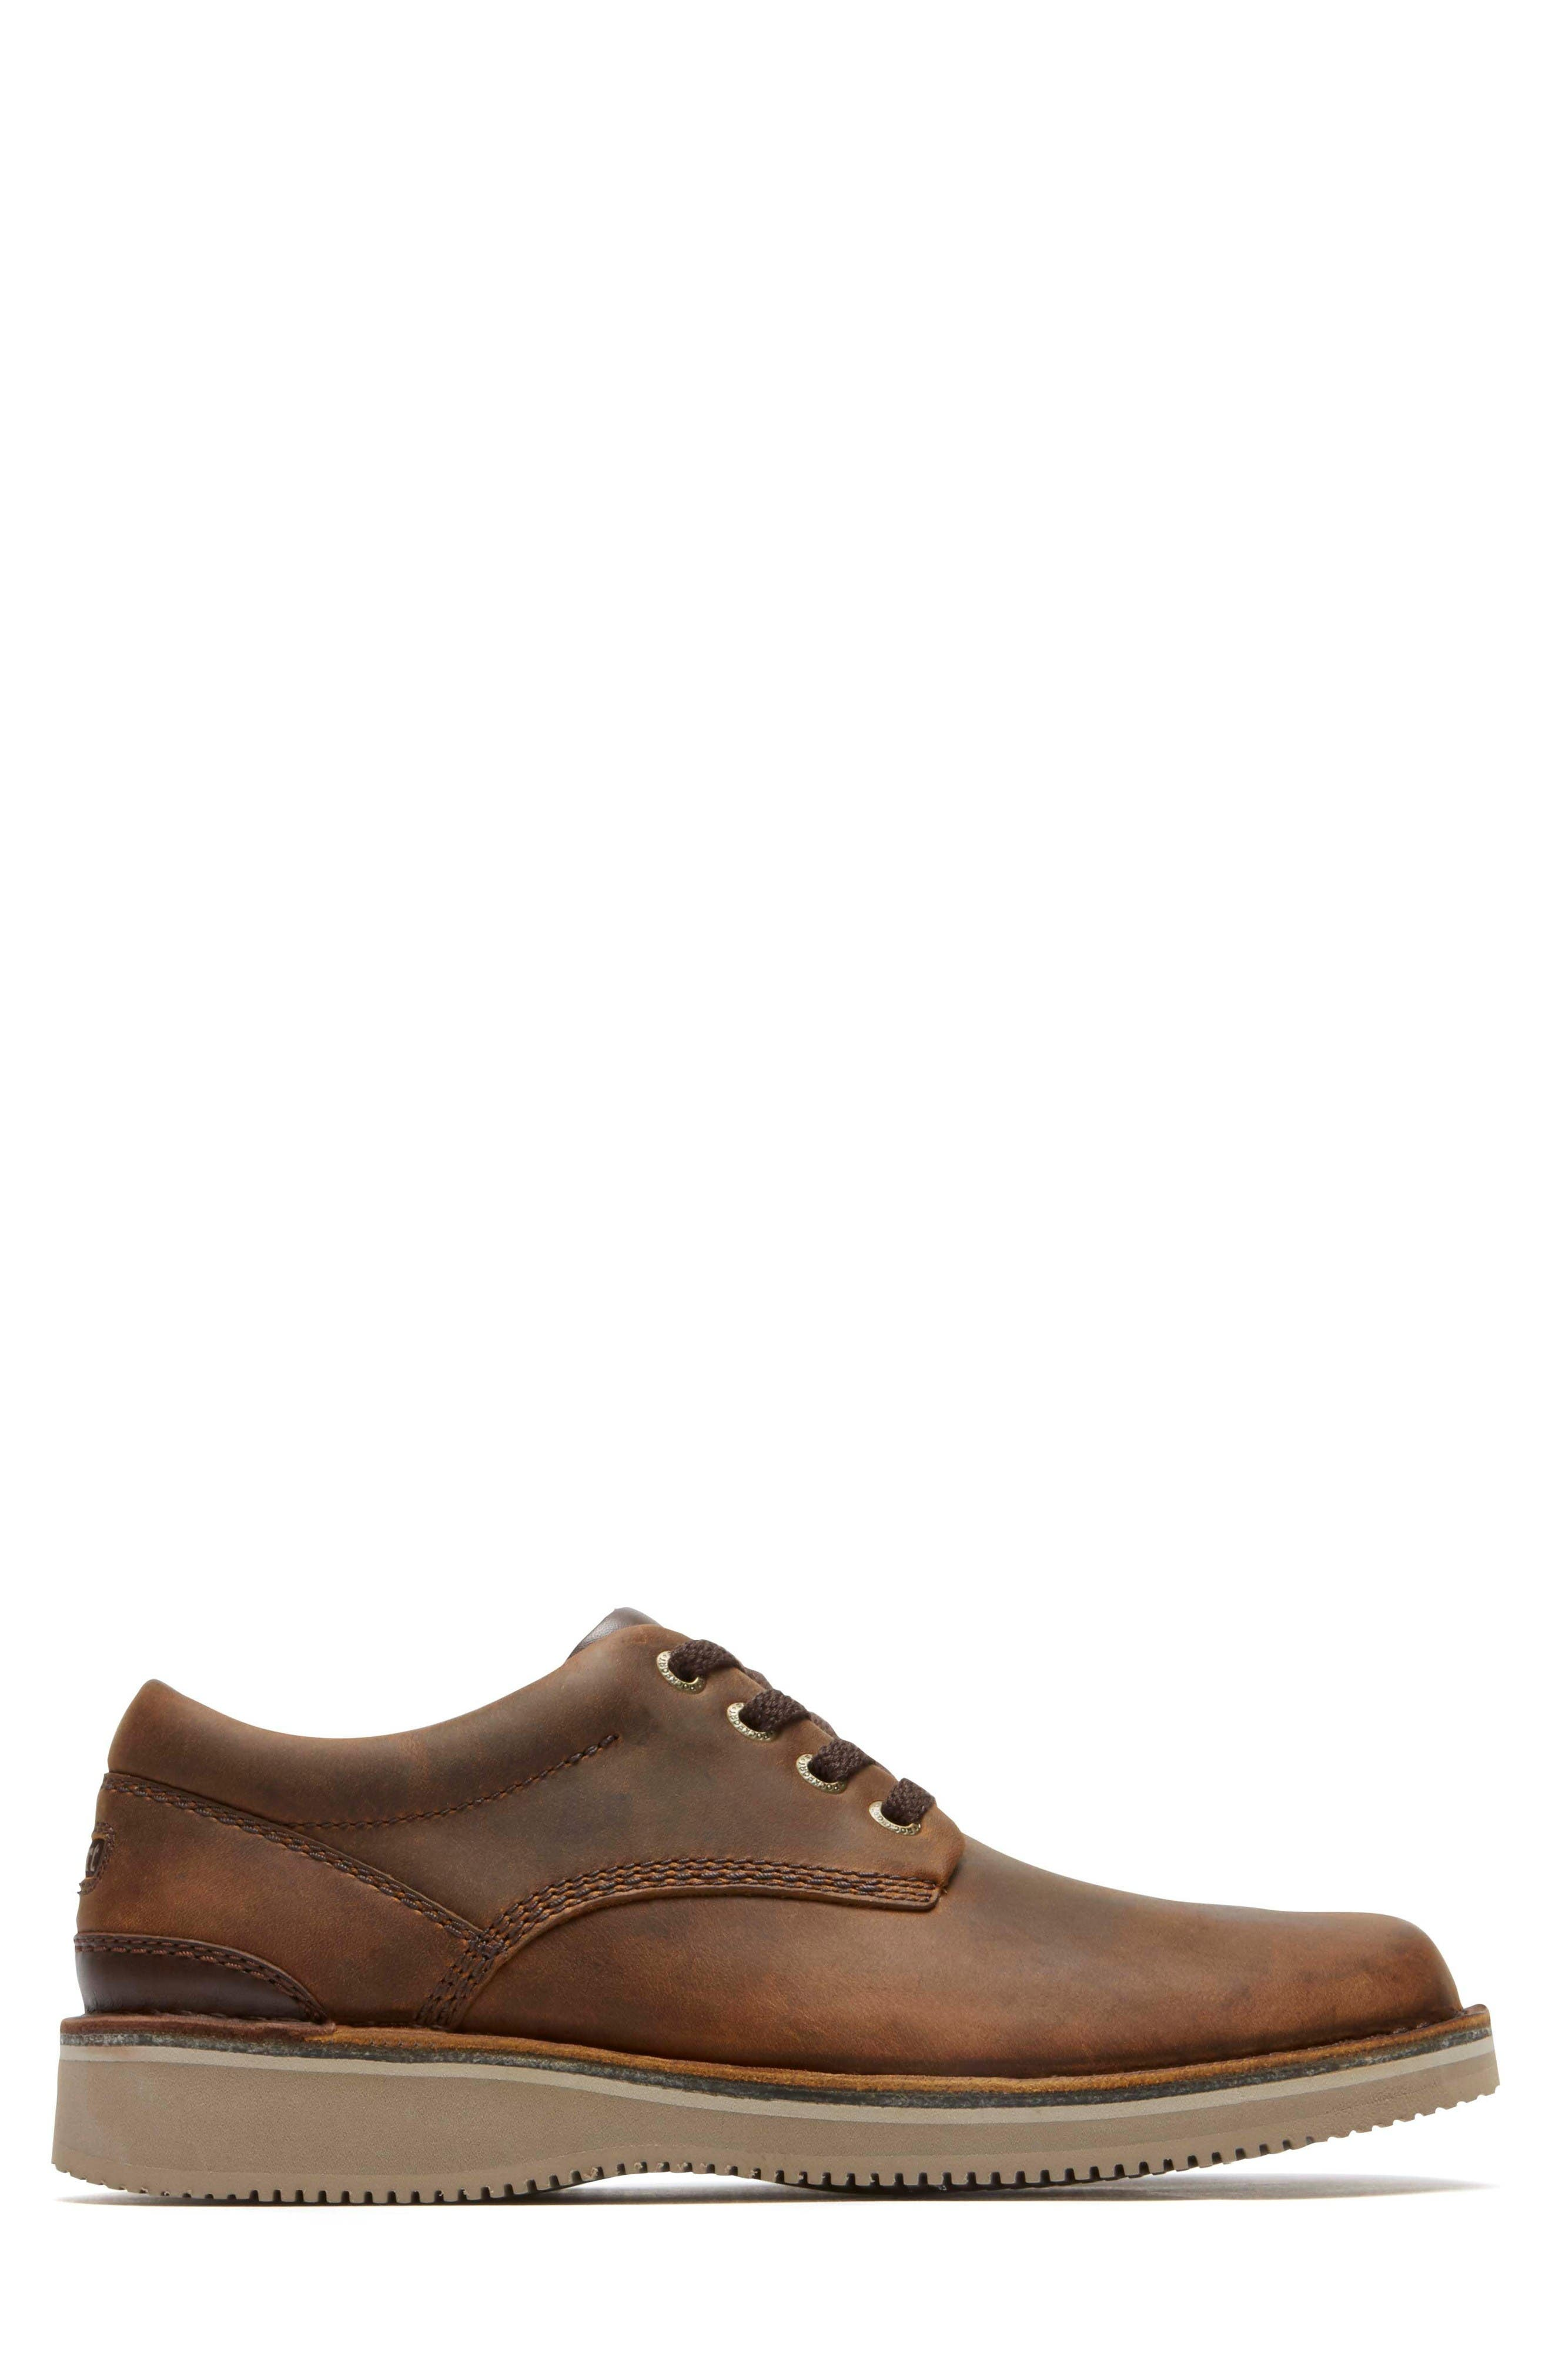 'Prestige Point' Plain Toe Derby,                             Alternate thumbnail 3, color,                             Beeswax Leather